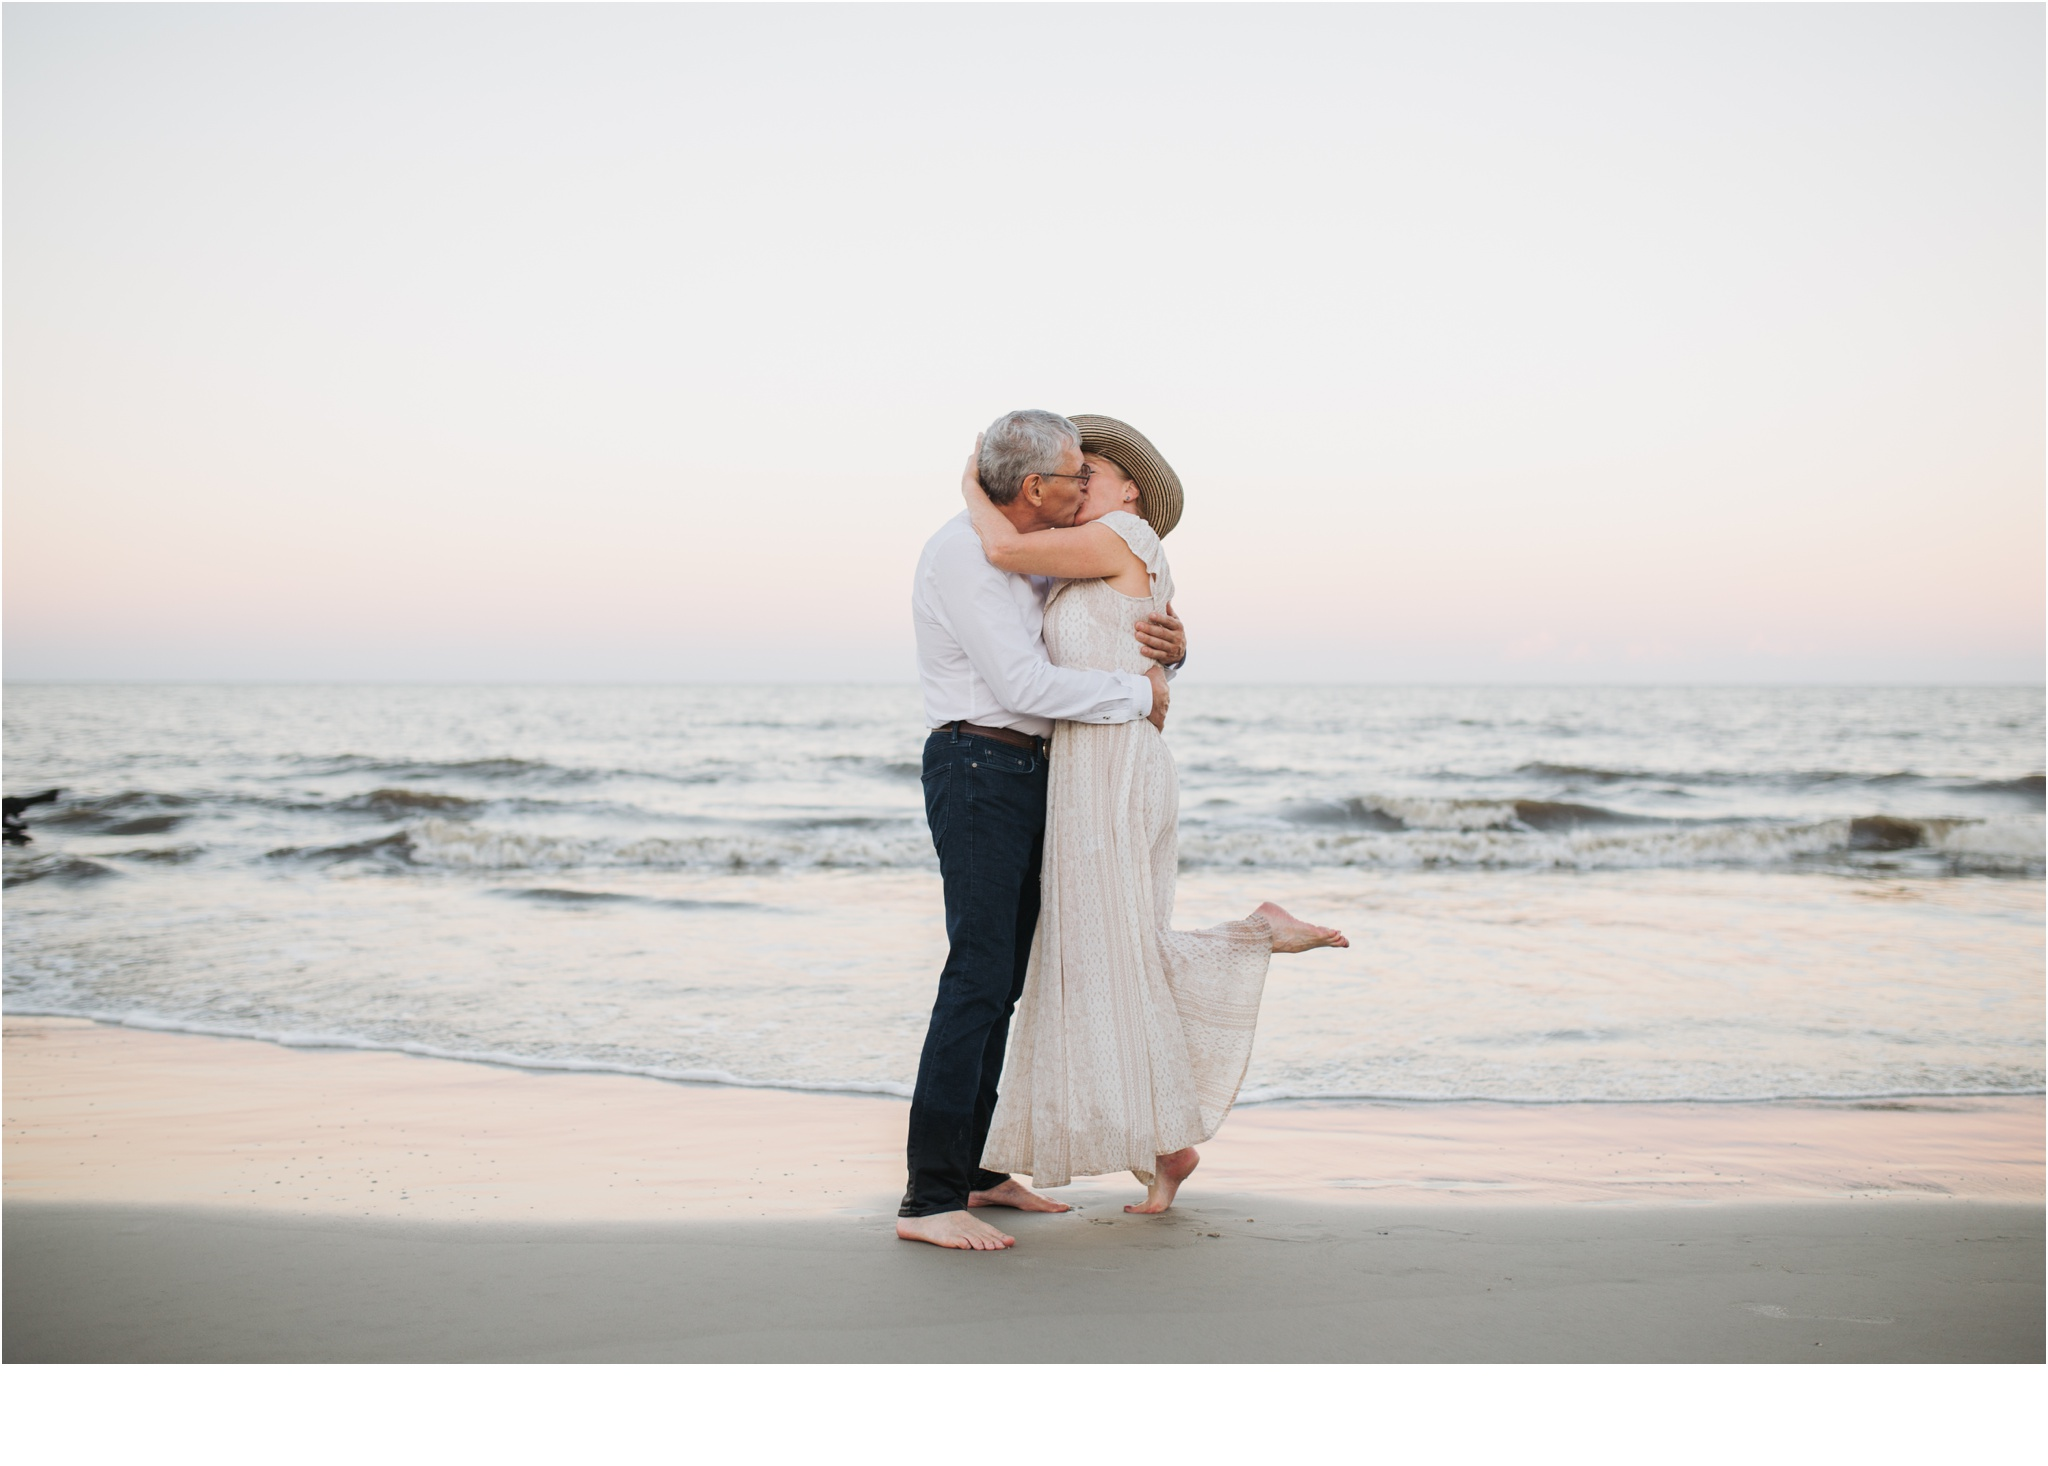 Rainey_Gregg_Photography_St._Simons_Island_Georgia_California_Wedding_Portrait_Photography_1609.jpg